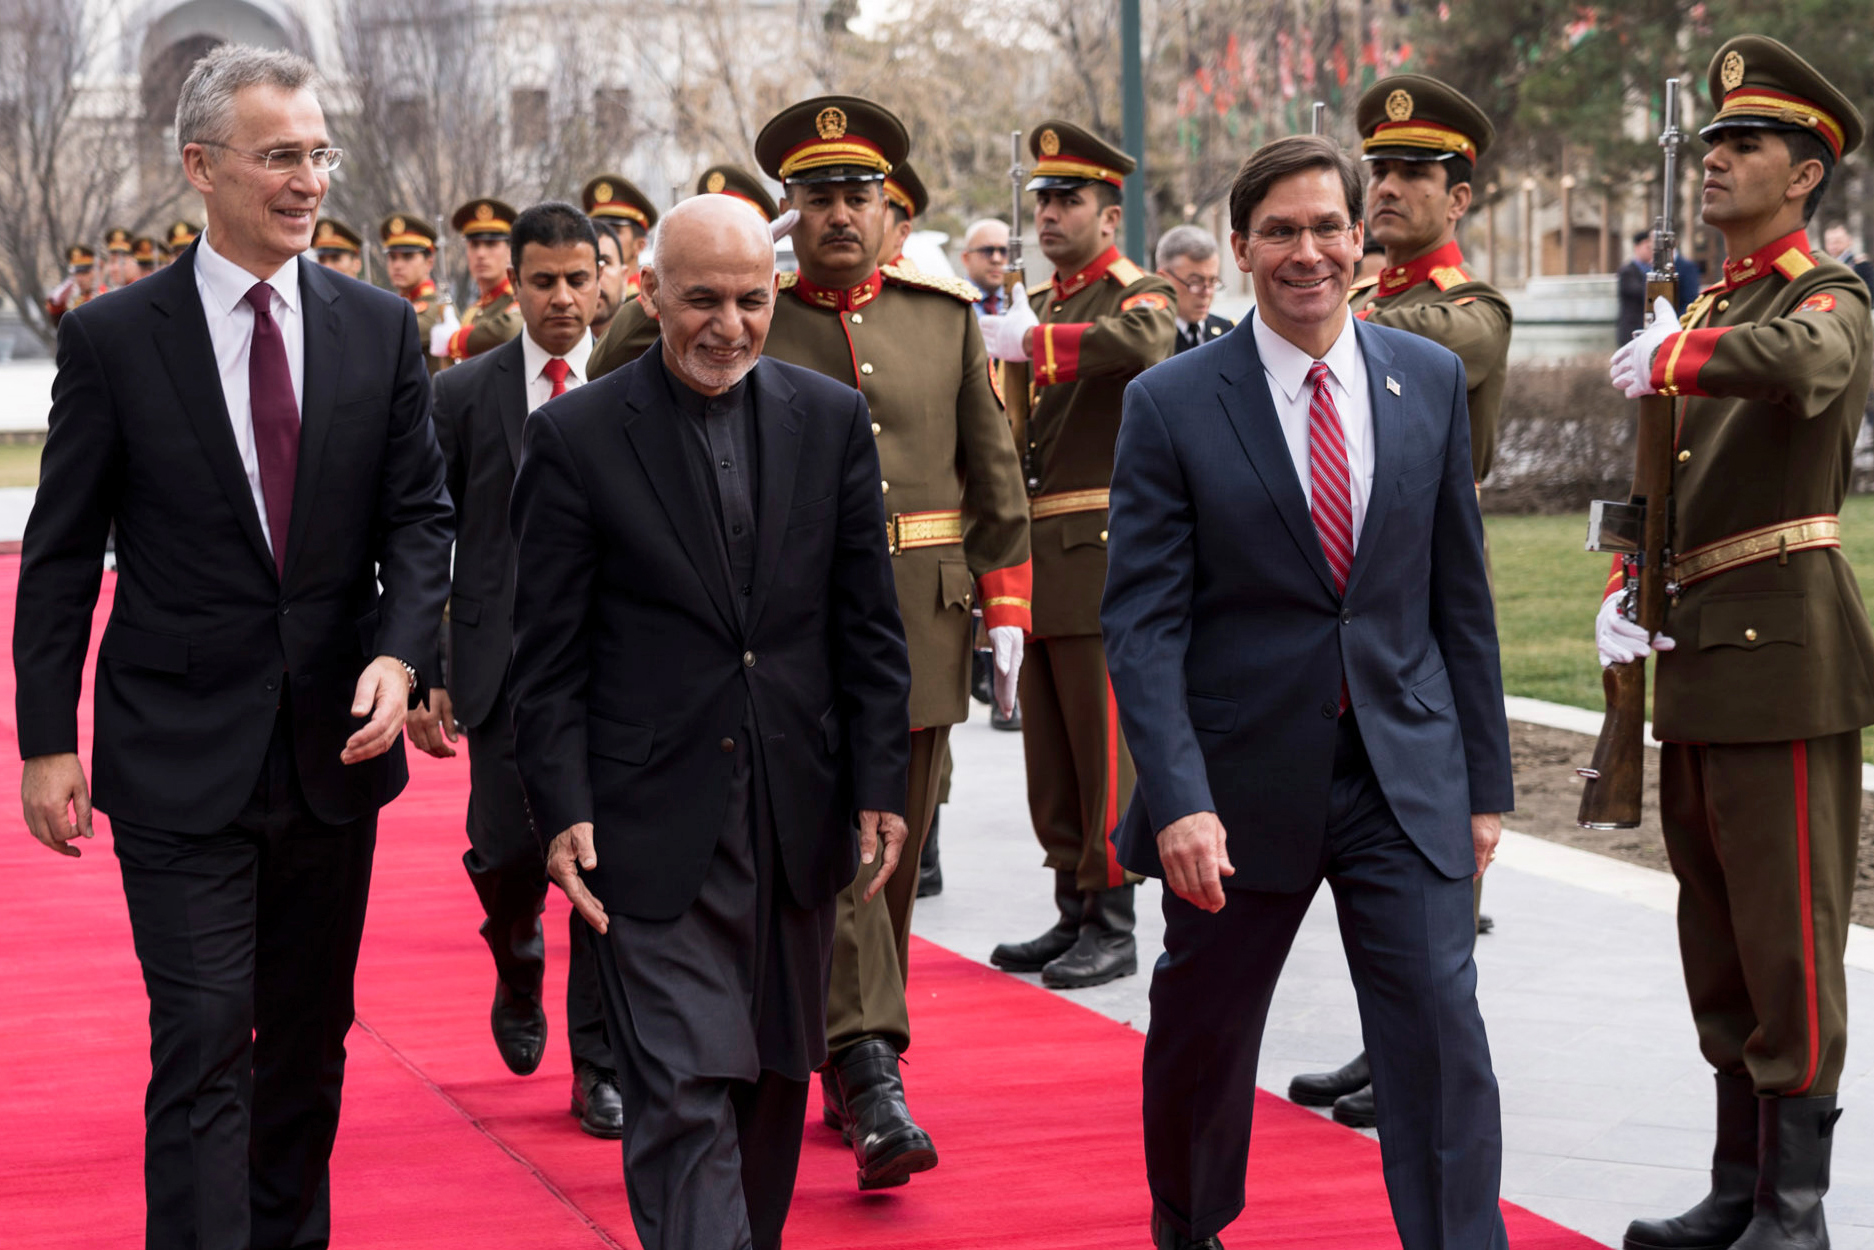 From left: NATO Secretary General Jens Stoltenberg, Afghanistan President Ashraf Ghani and U.S. Secretary of Defense Mark Esper prepare to speak in Kabul on Feb. 29, 2020, regarding a joint declaration that could result in all foreign troops leaving Afghanistan within 14 months. (NATO)